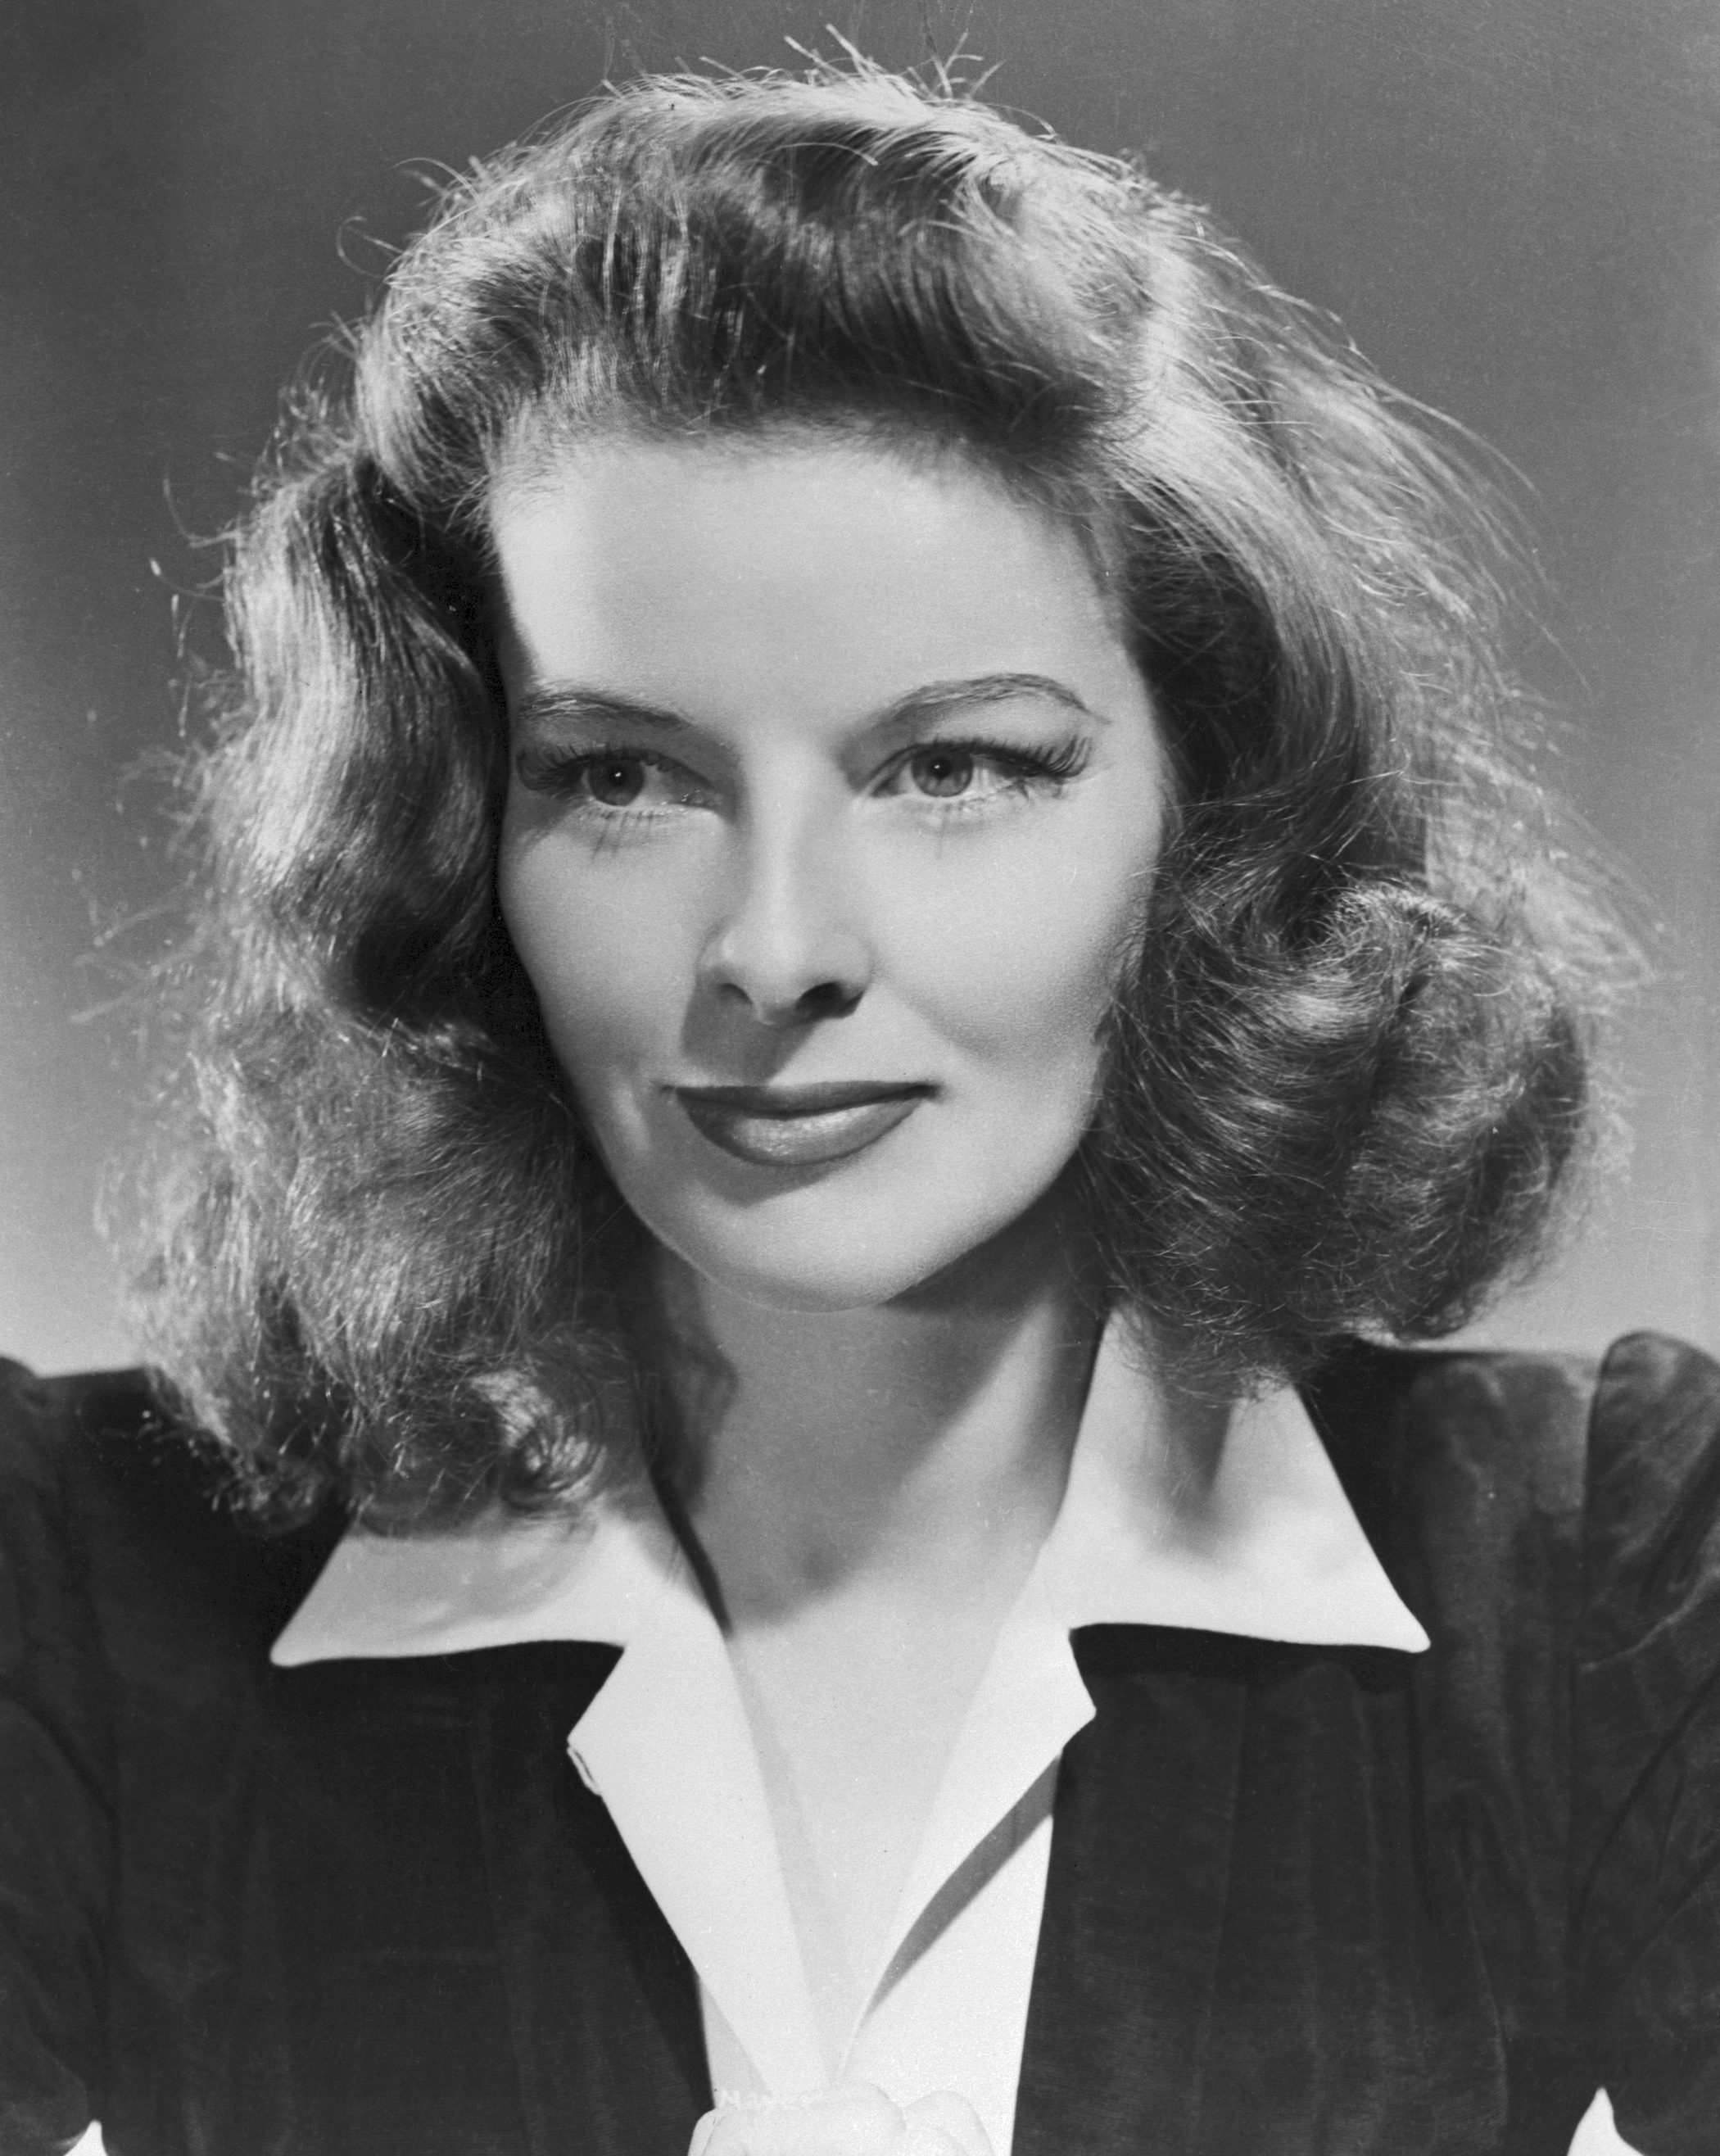 Katharine Hepburn Howard Hughes Relationship Portrait of hepburn, aged 33